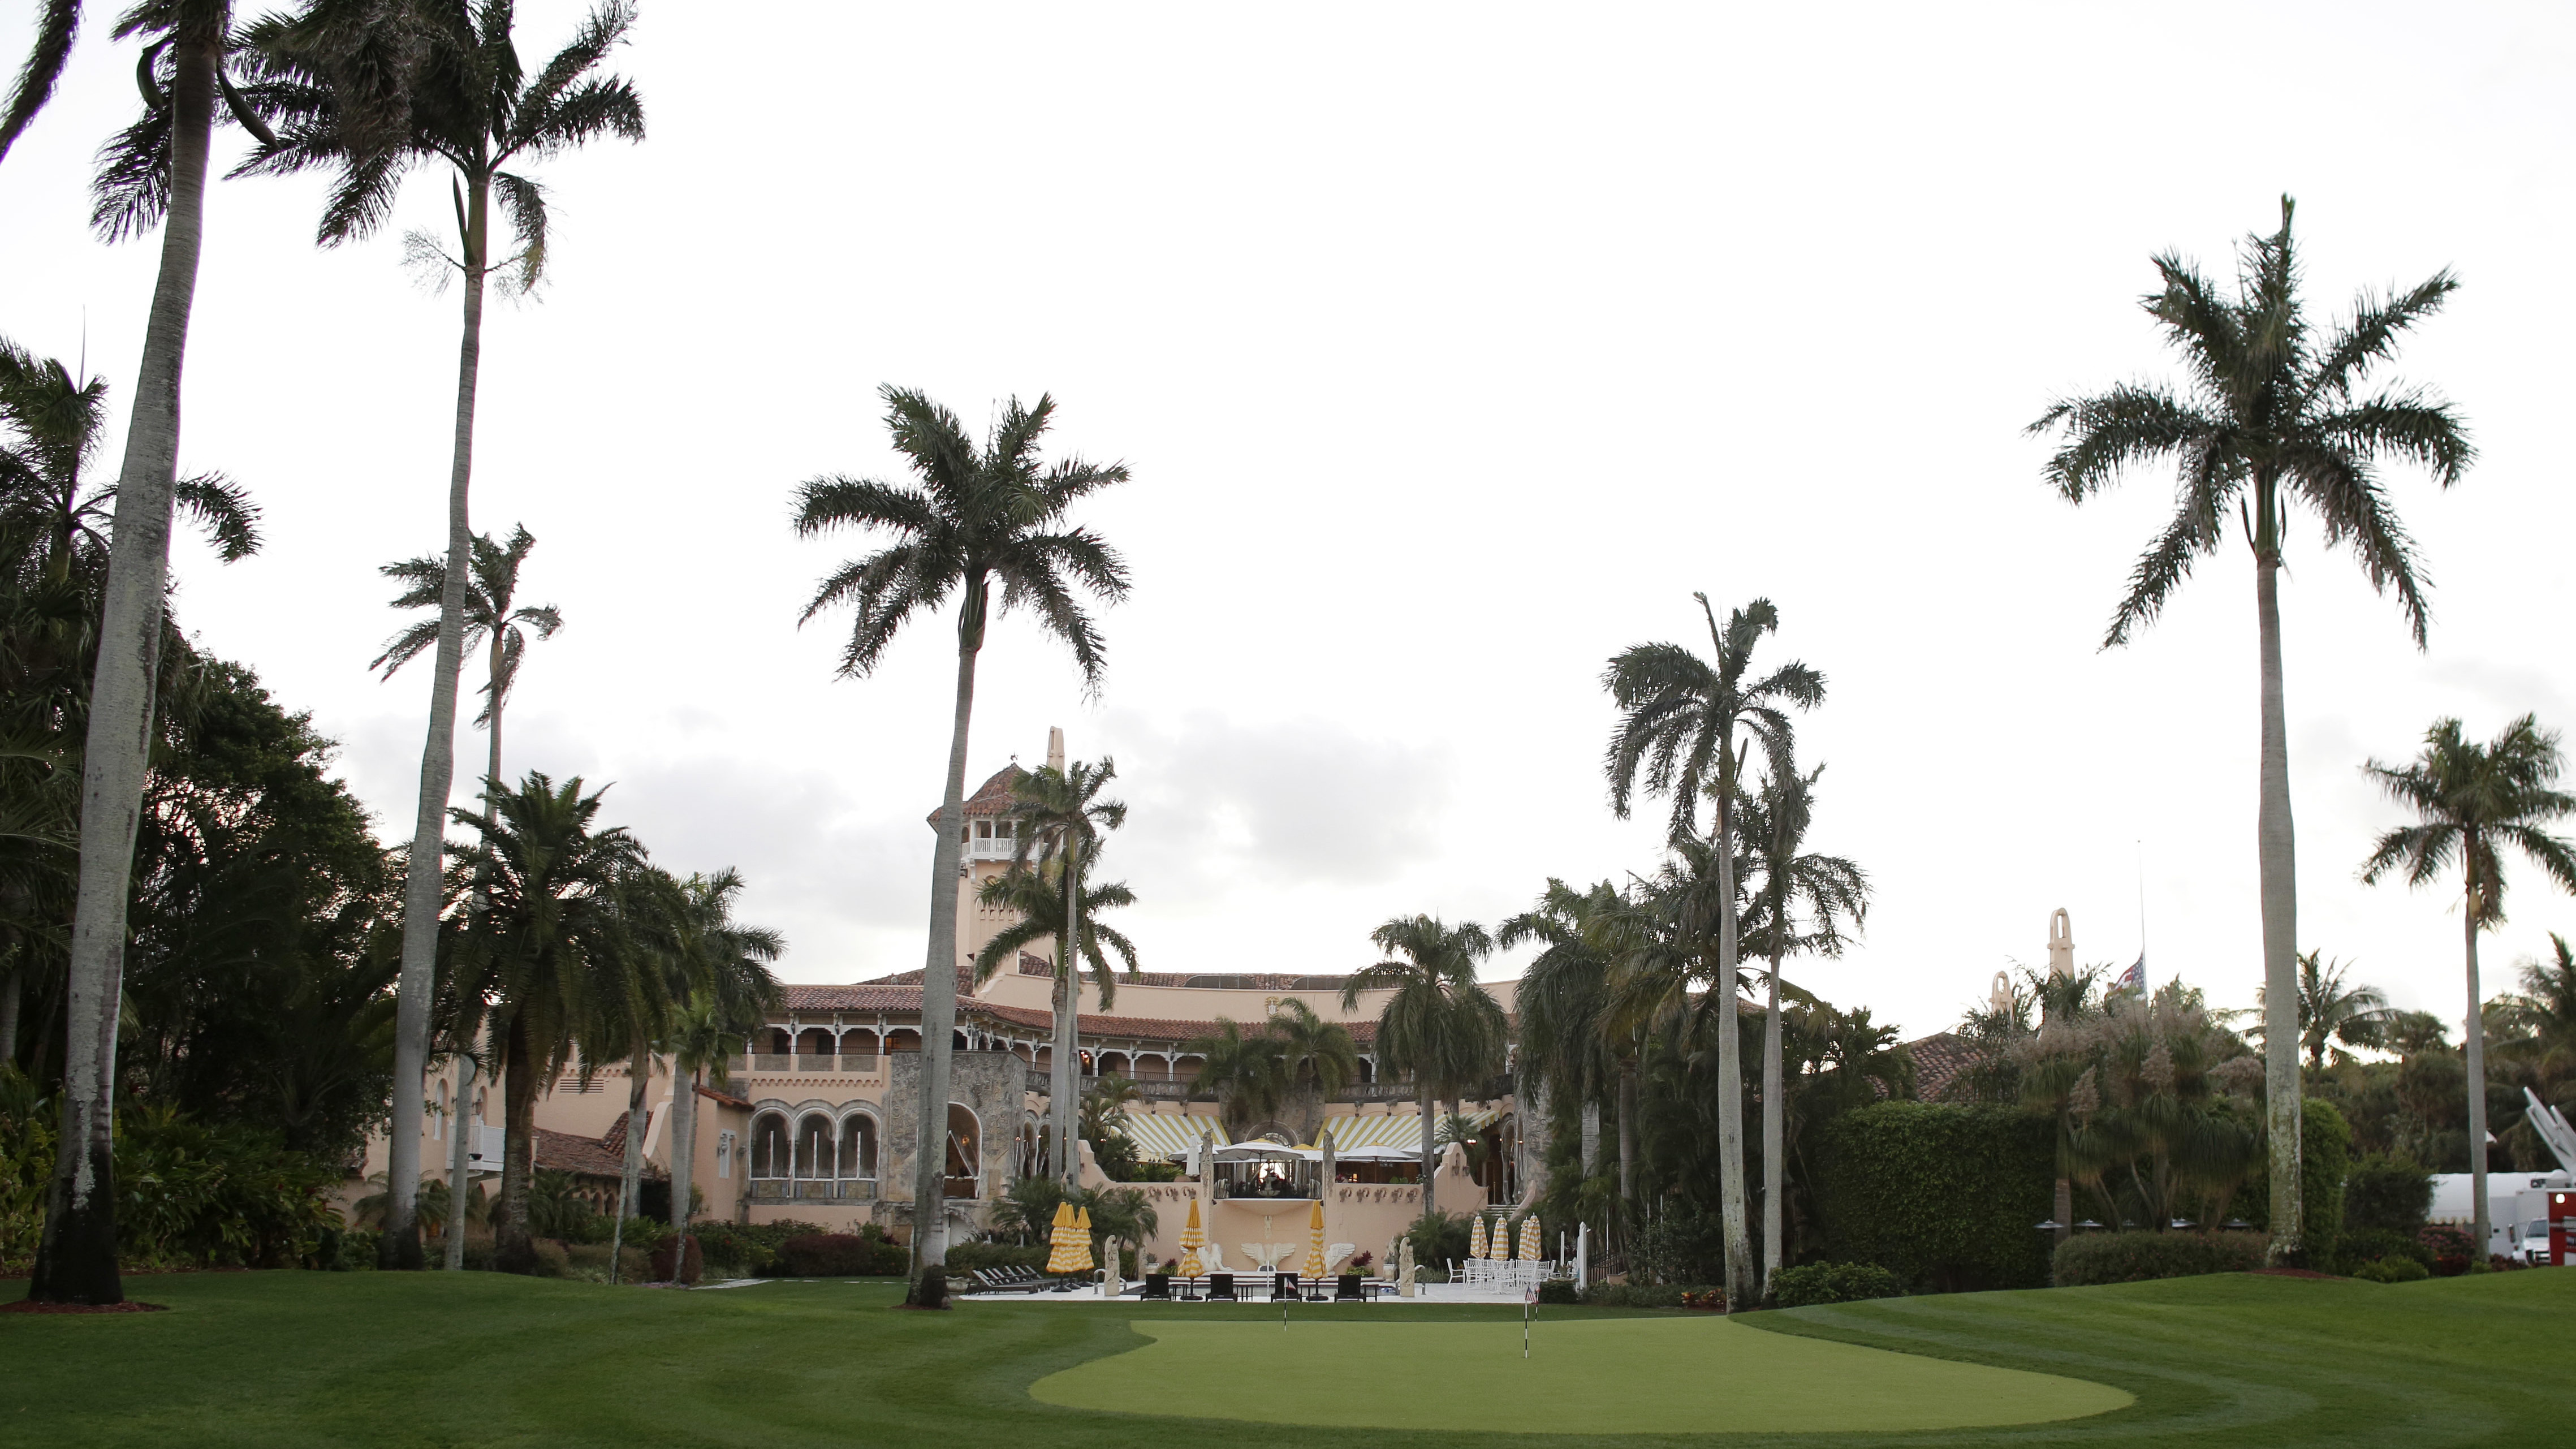 Trump administration releases 22 names of visitors to Mar-a-Lago